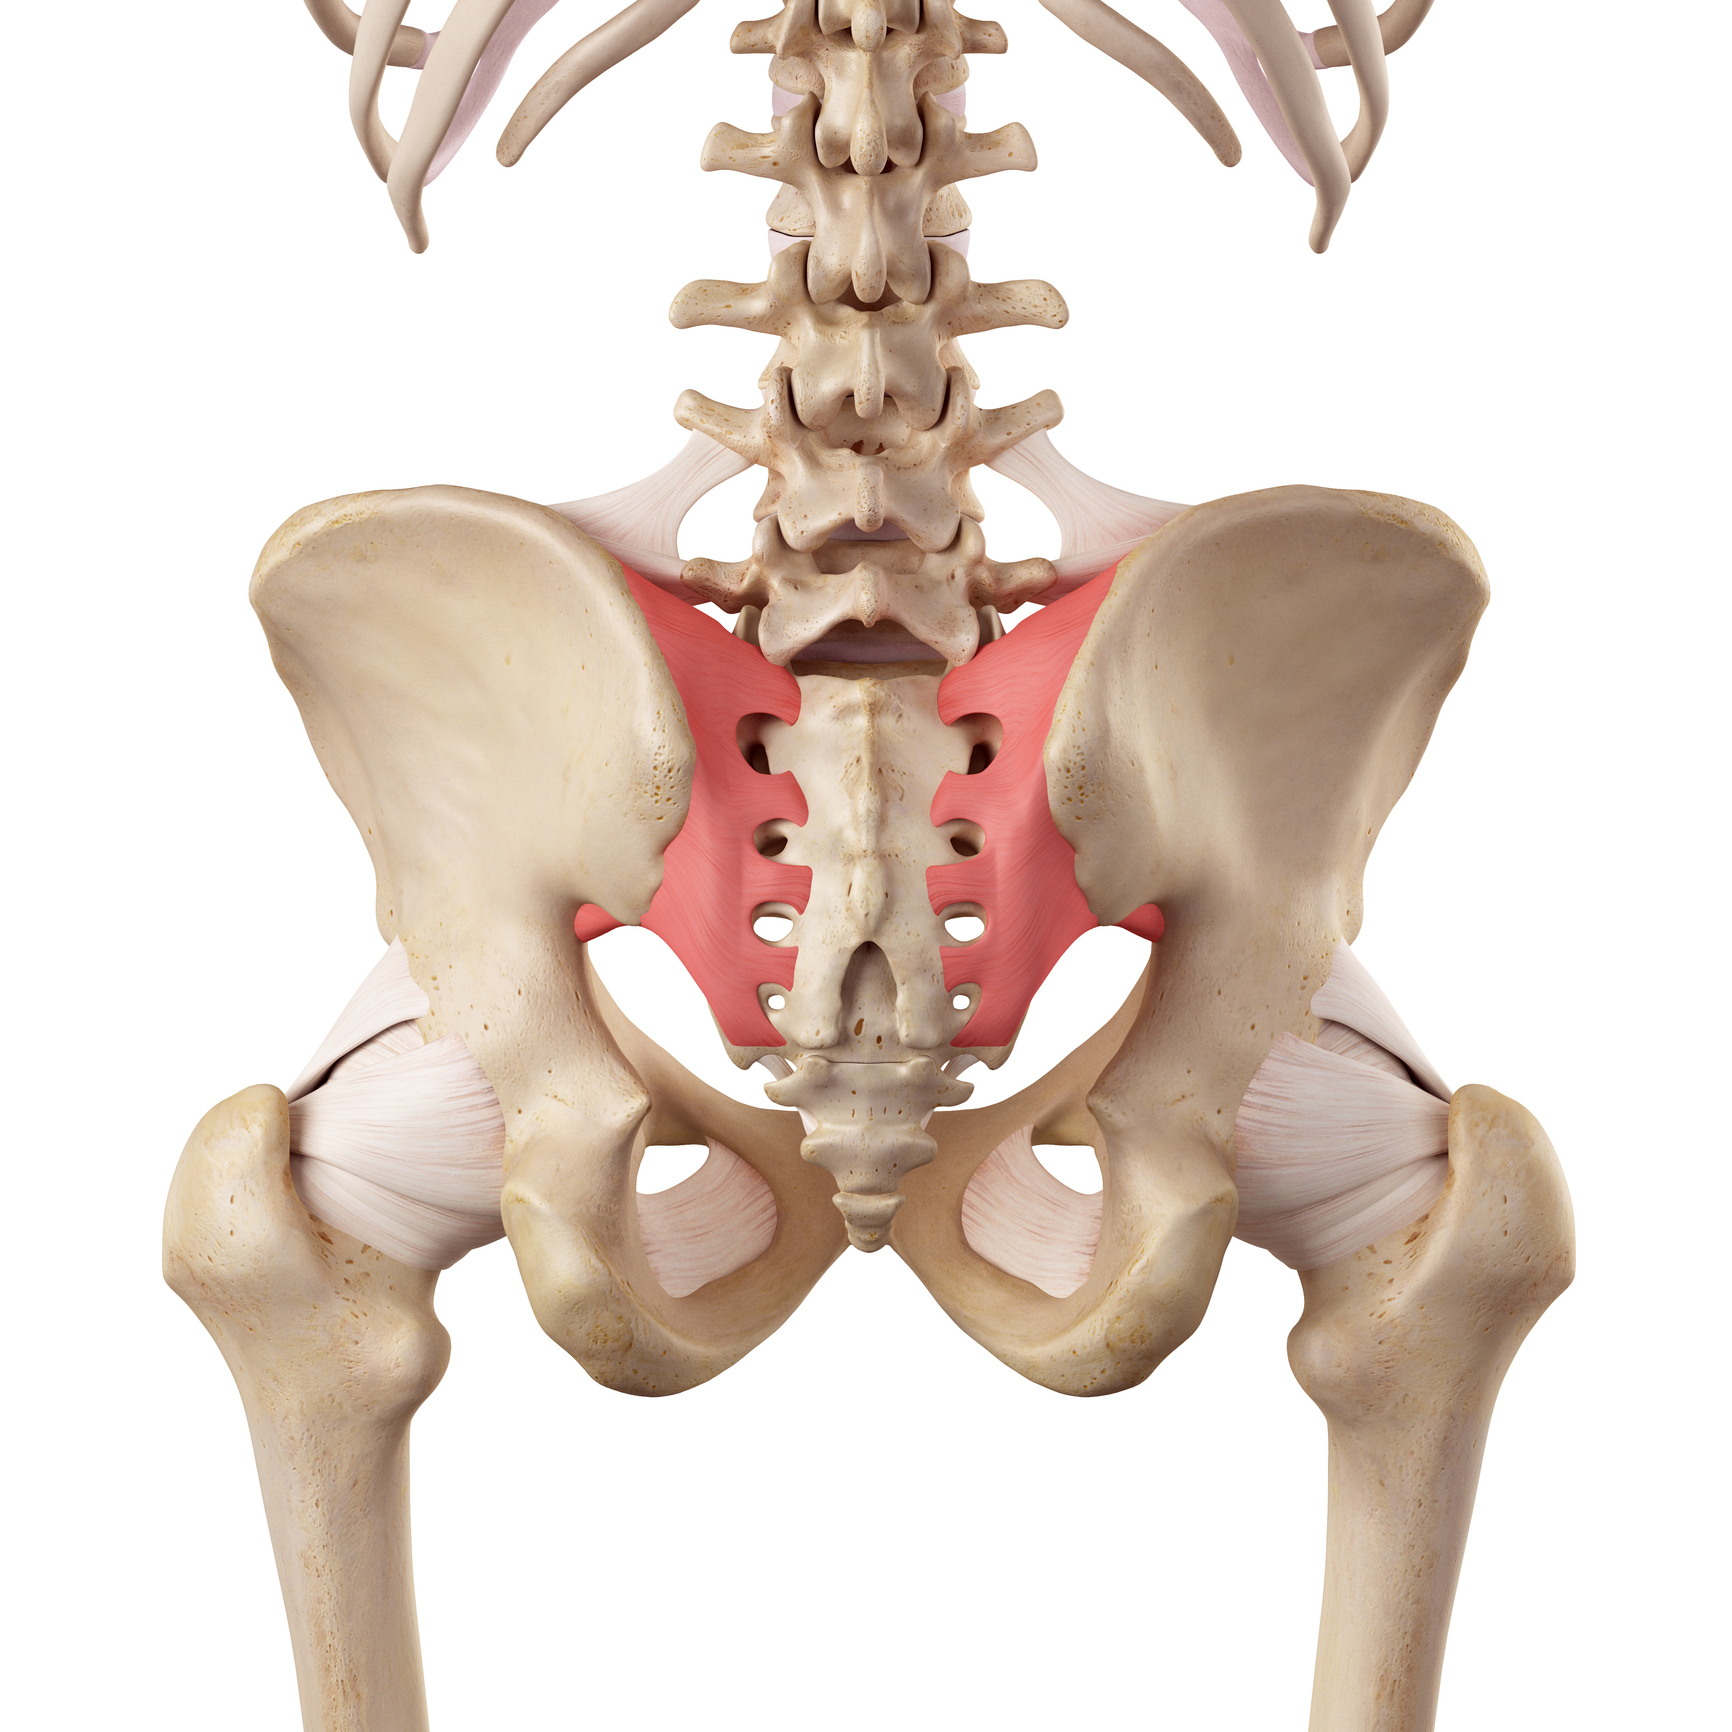 5 Ways to Treat Your SI Joint Dysfunction